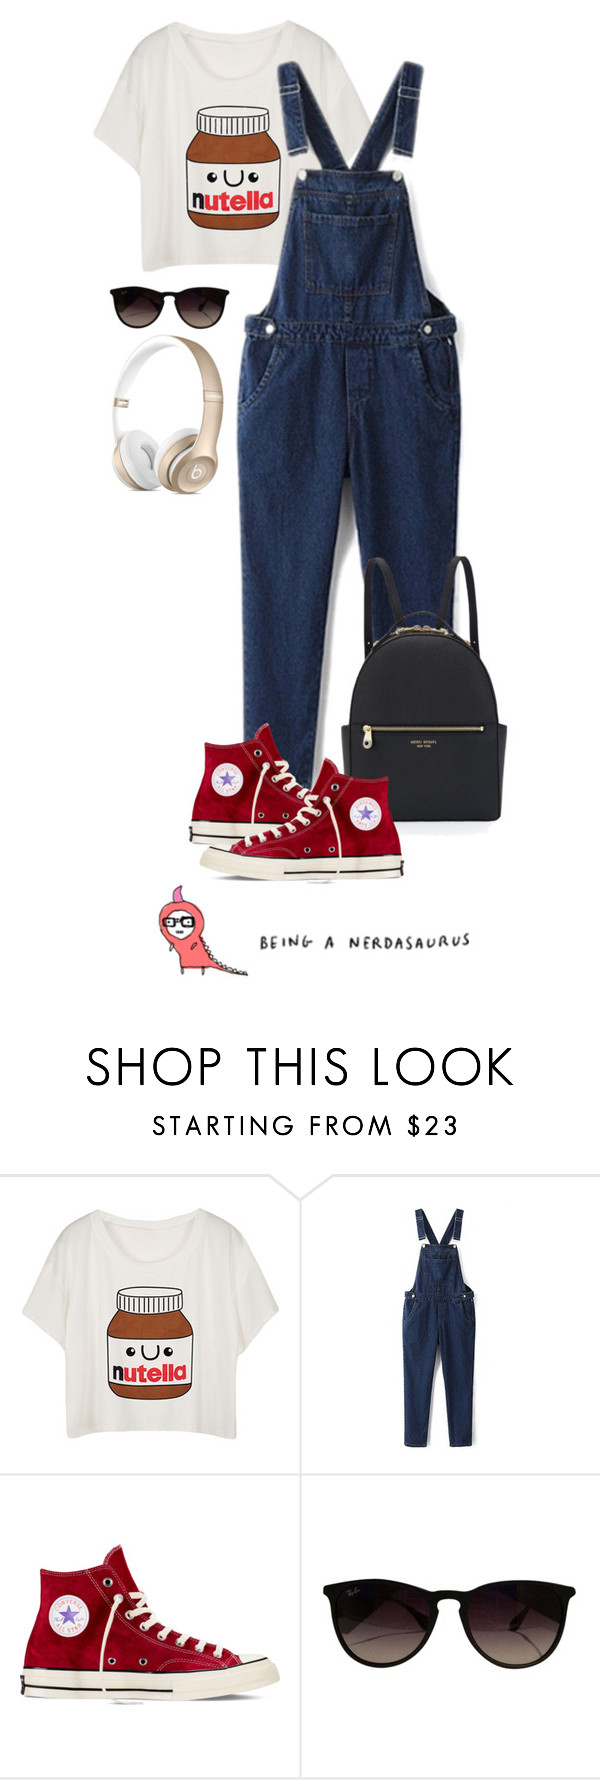 """""""Nerdasaurus (tfp)"""" by boxthoughts ❤ liked on Polyvore featuring WithChic, Converse, Ray-Ban, Henri Bendel and tfp"""